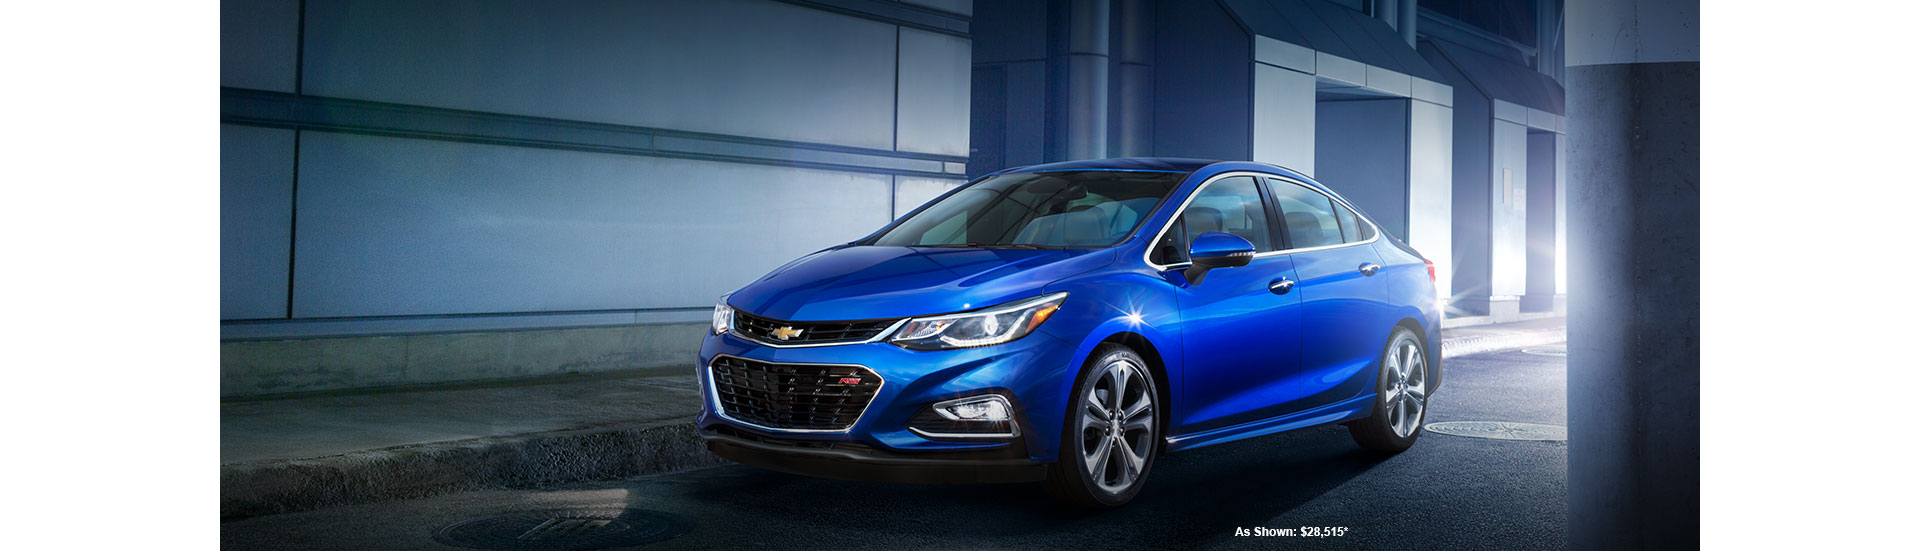 Chevrolet Cruze L Matthew Hargreaves L Royal Oak